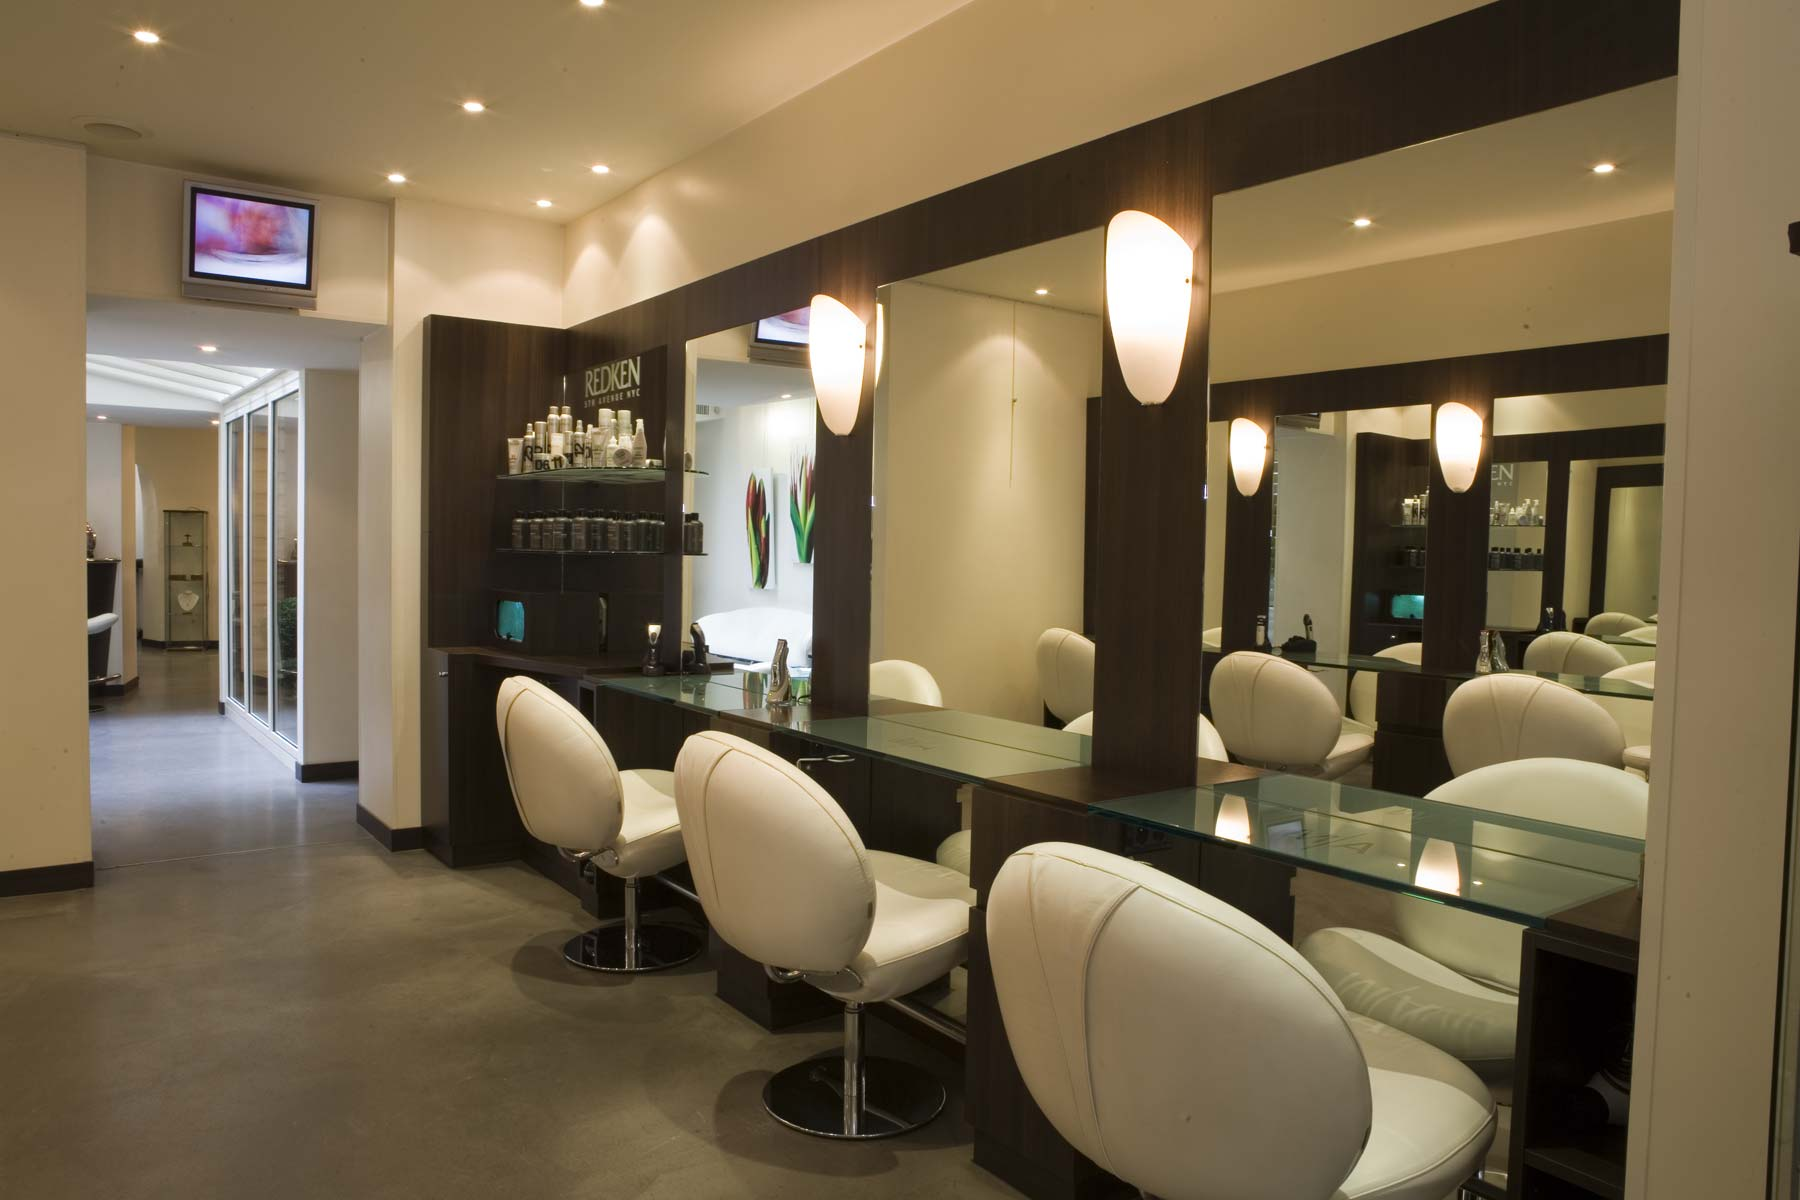 Emejing Salon Coiffure Moderne Contemporary - Amazing House Design ...